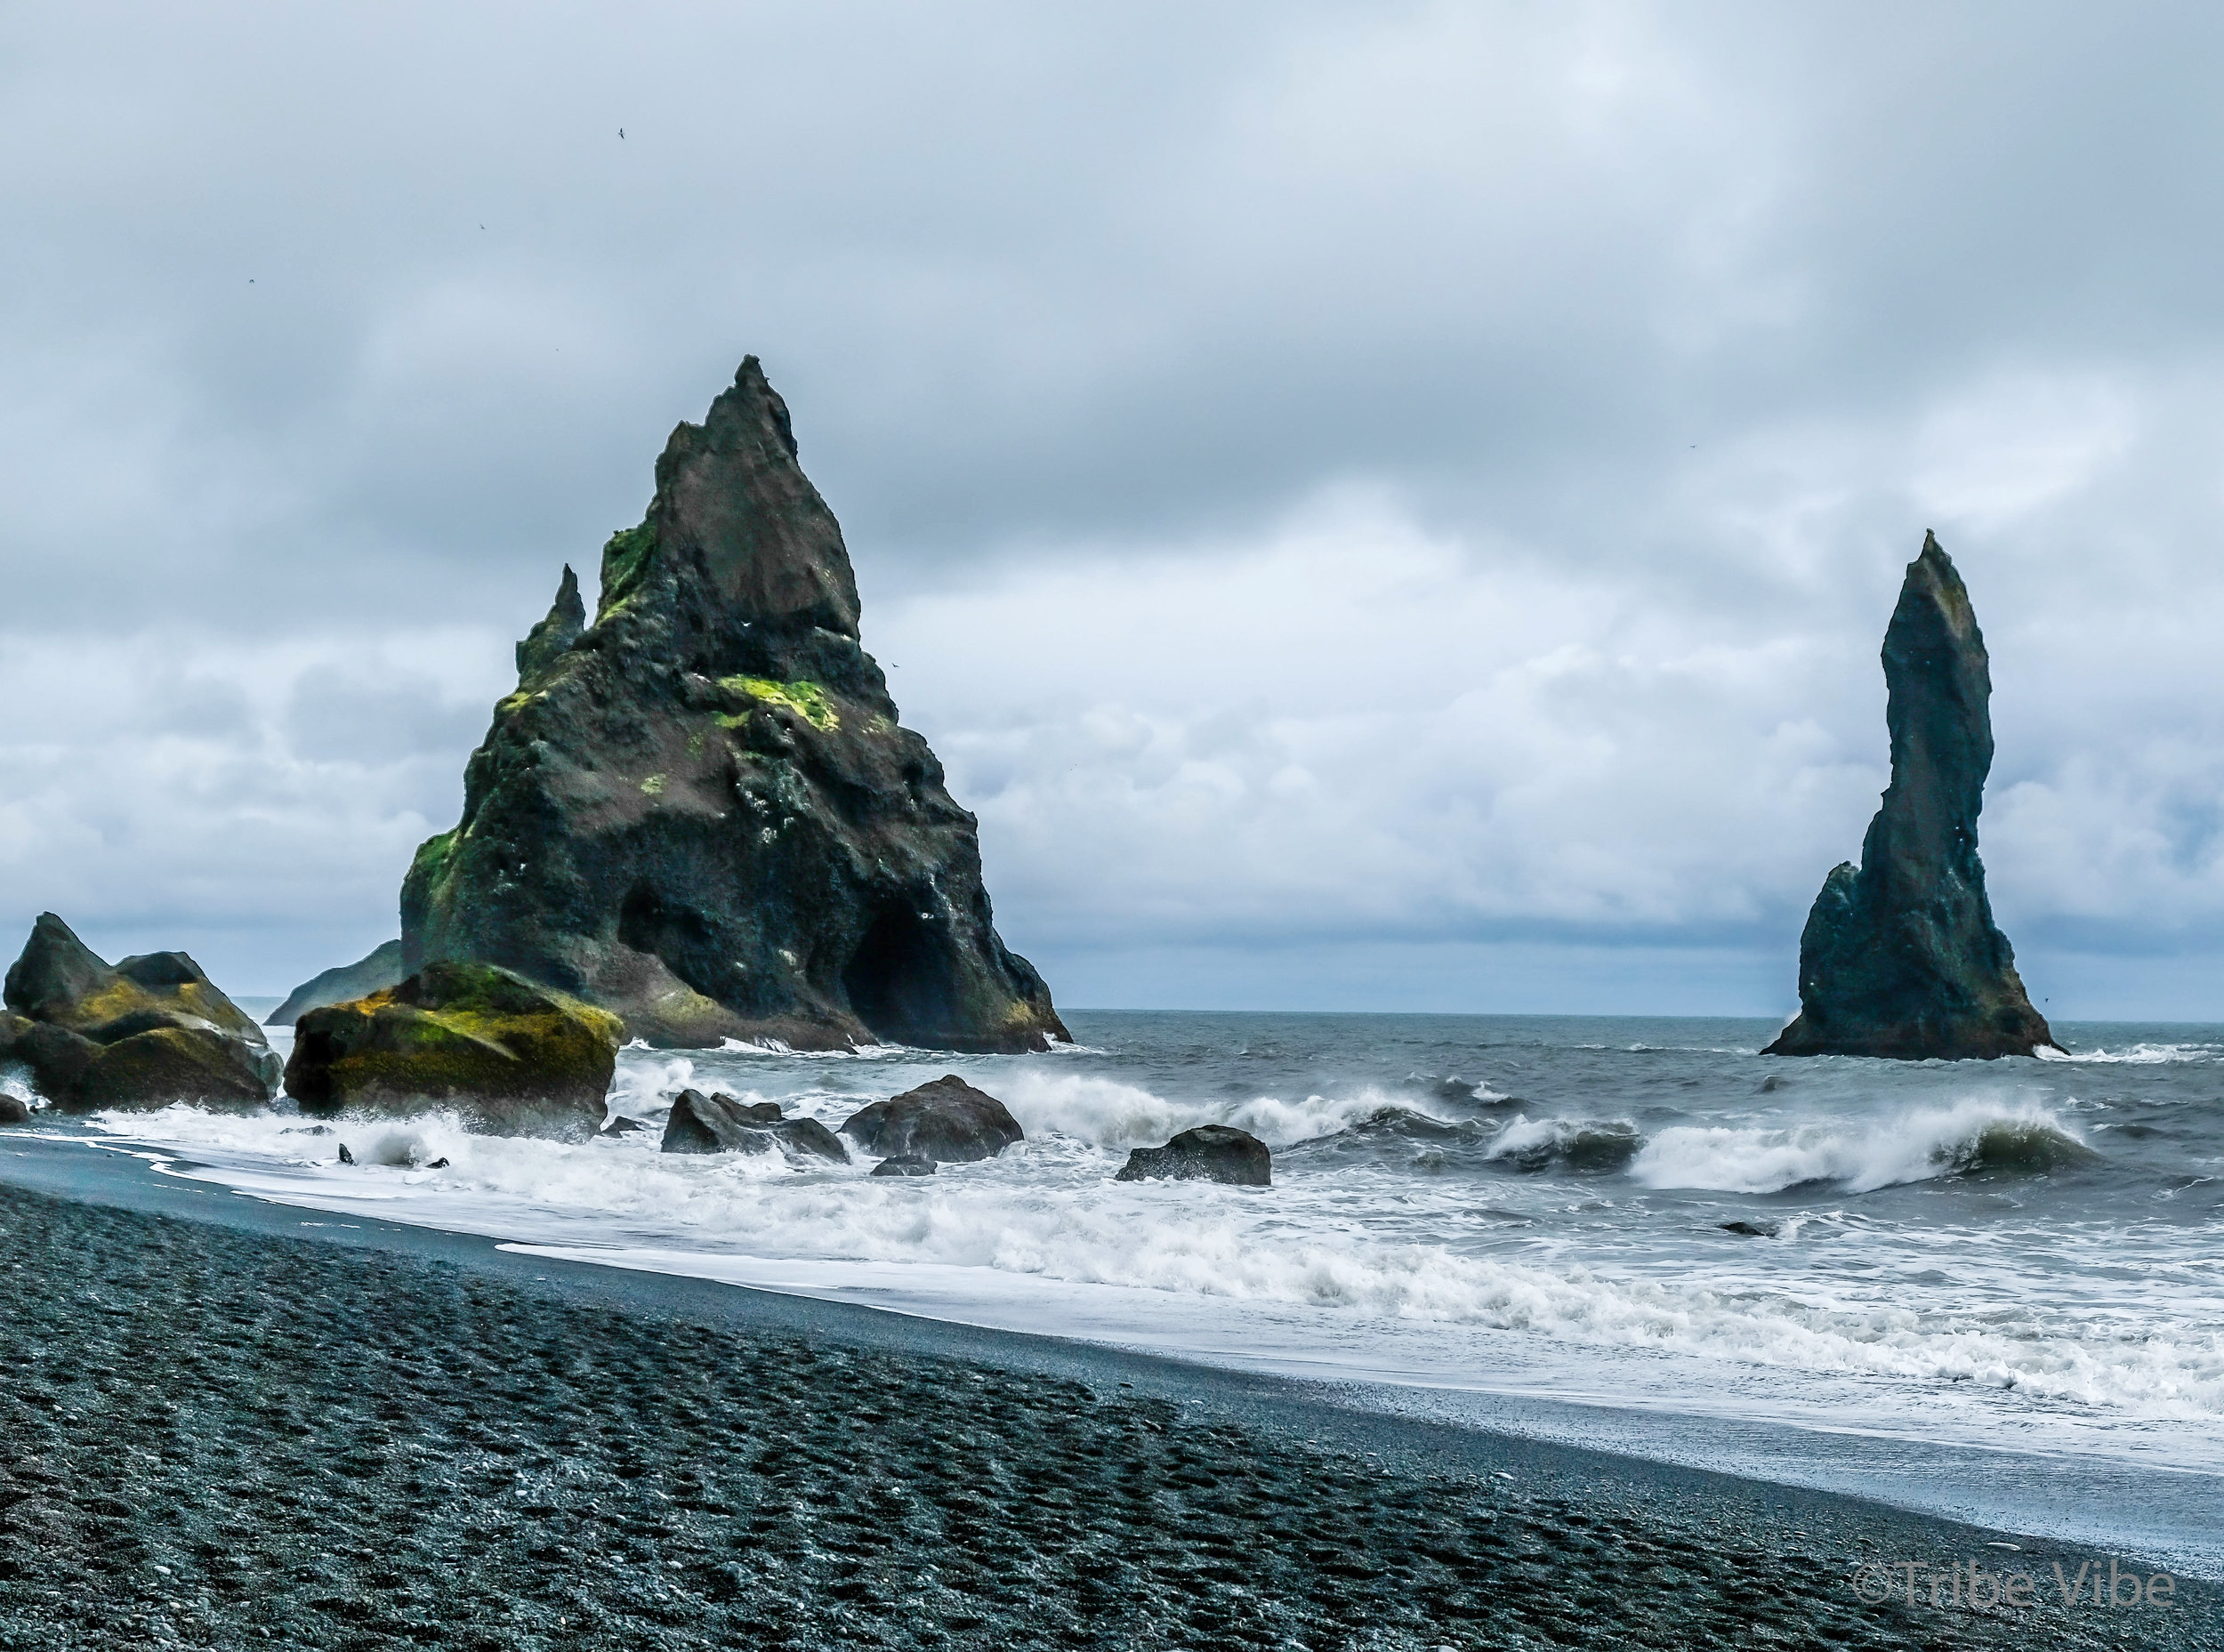 Basalt pillars in Reynisdrangar, Iceland. Family road trip through Iceland.